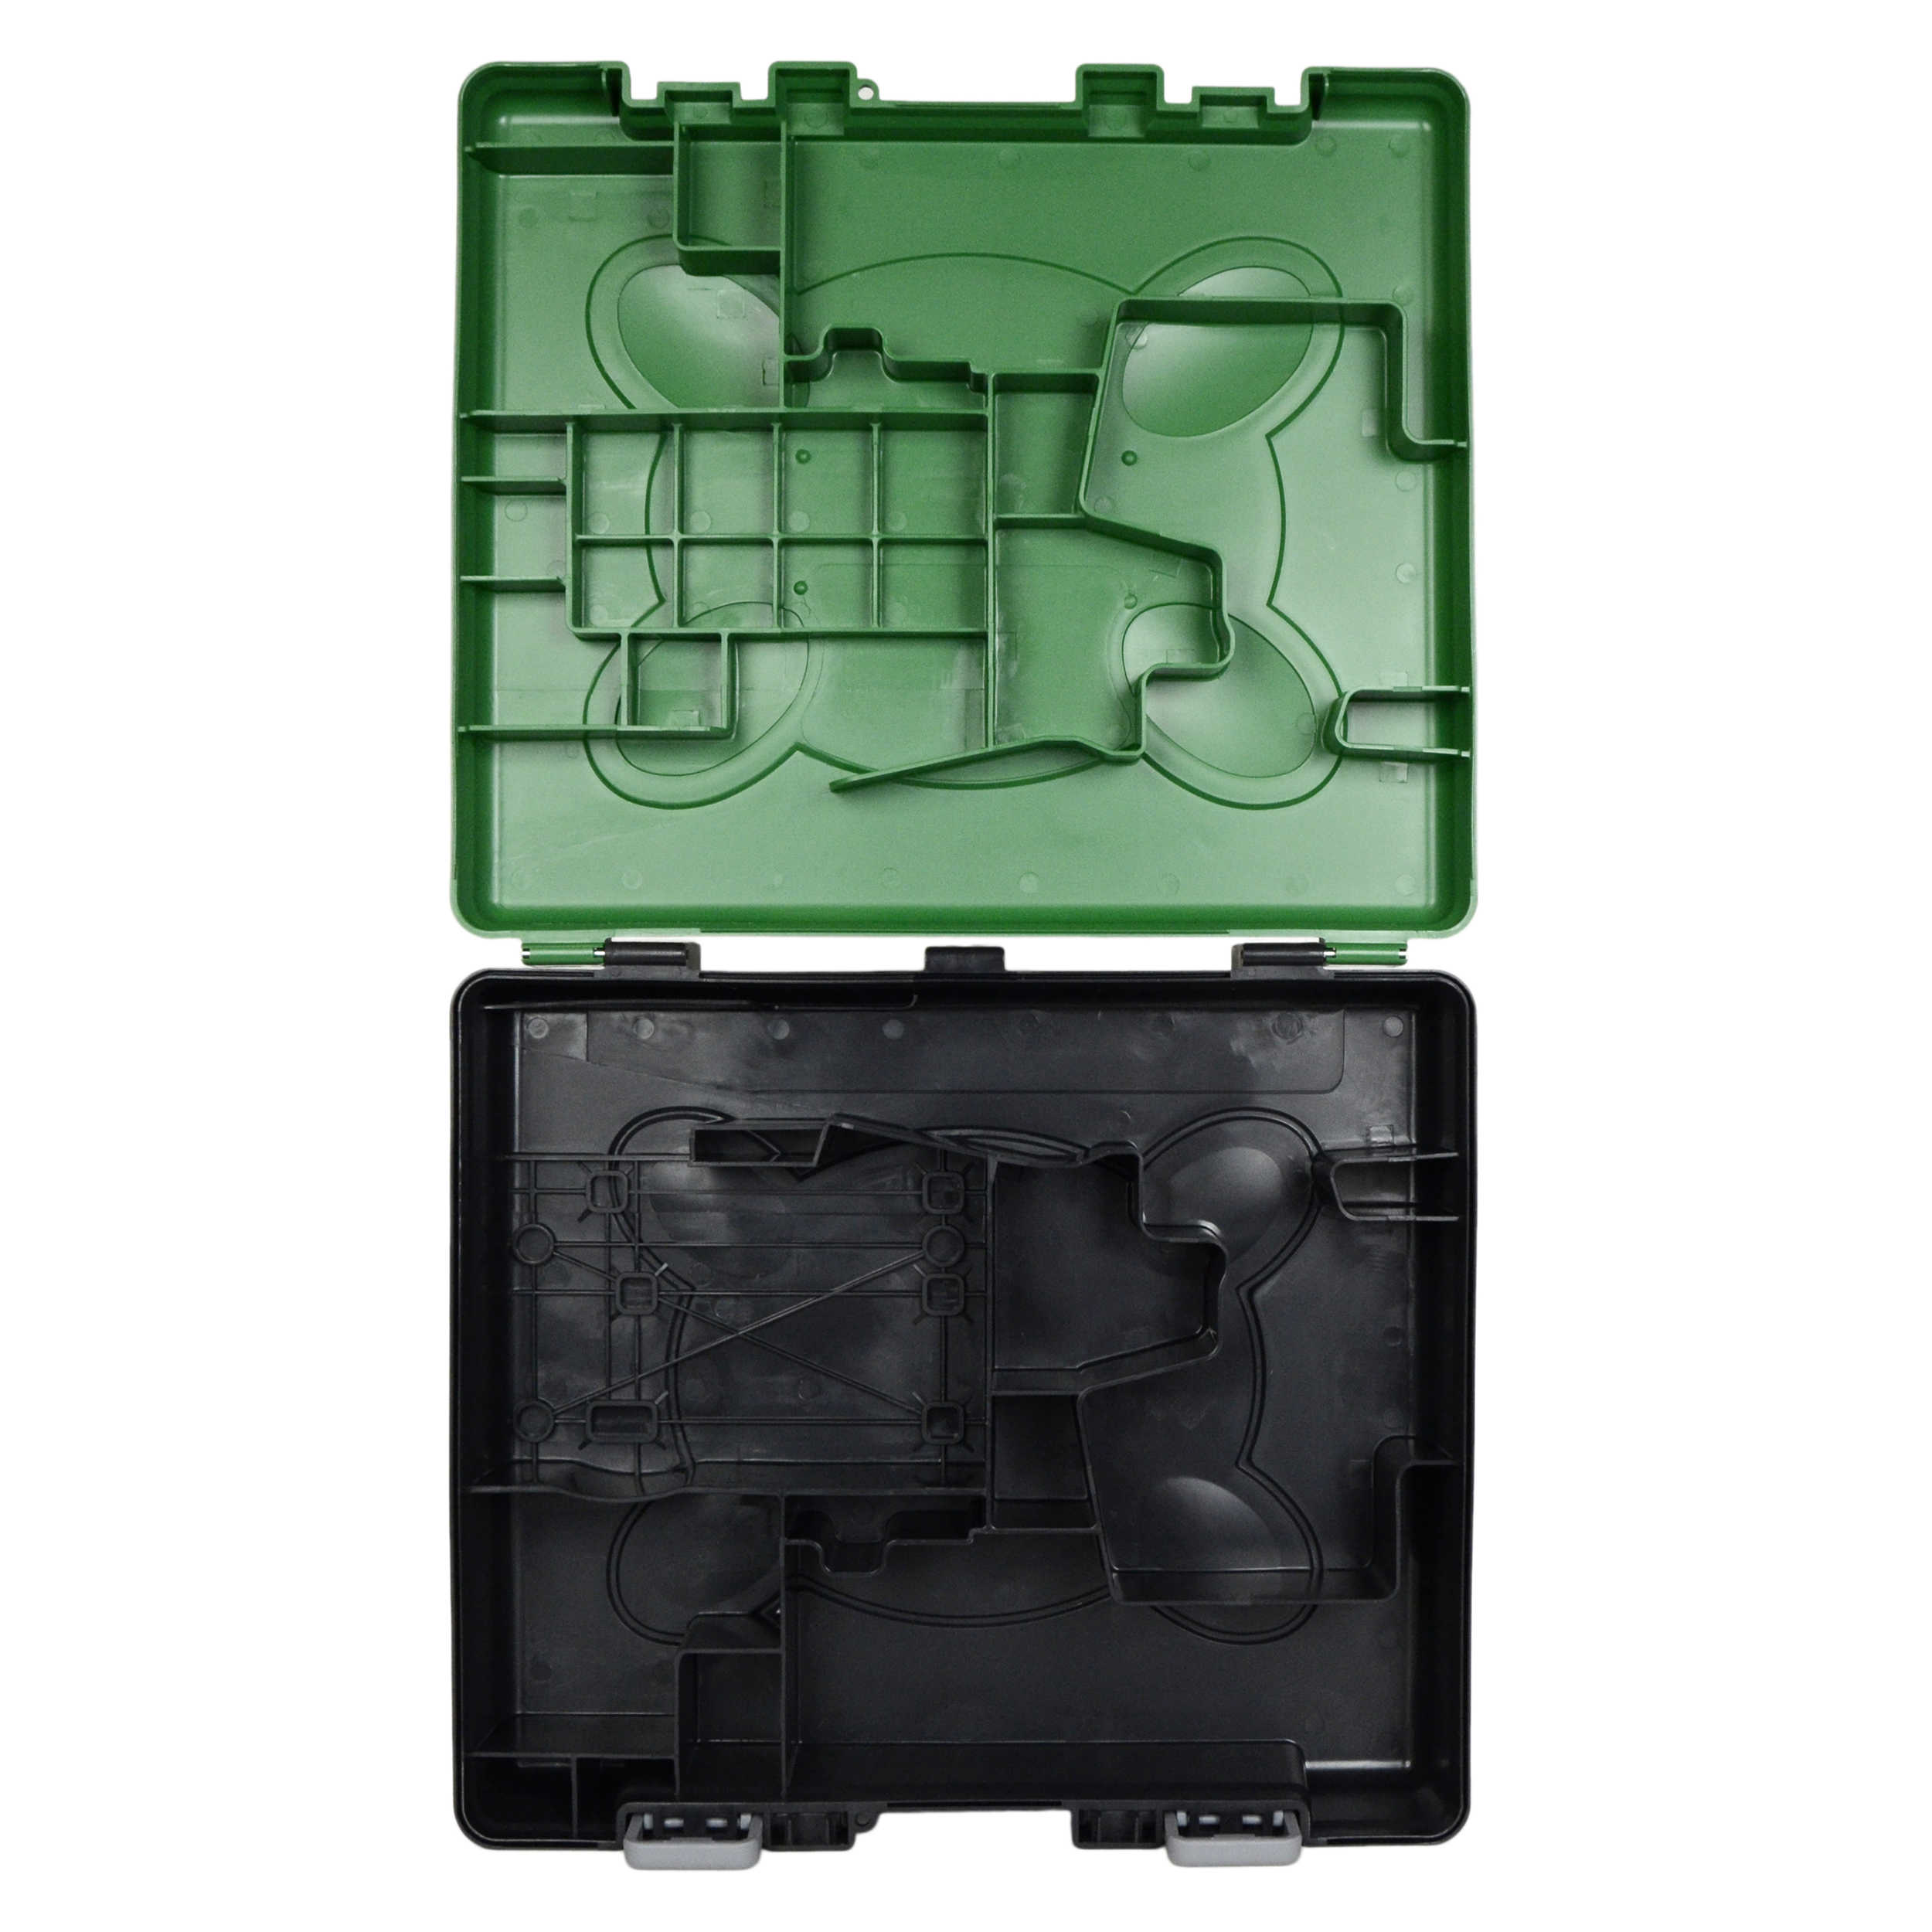 Hitachi Power Tools DS18DSAL Plastic Tool Kit Carrying Case with Green Top